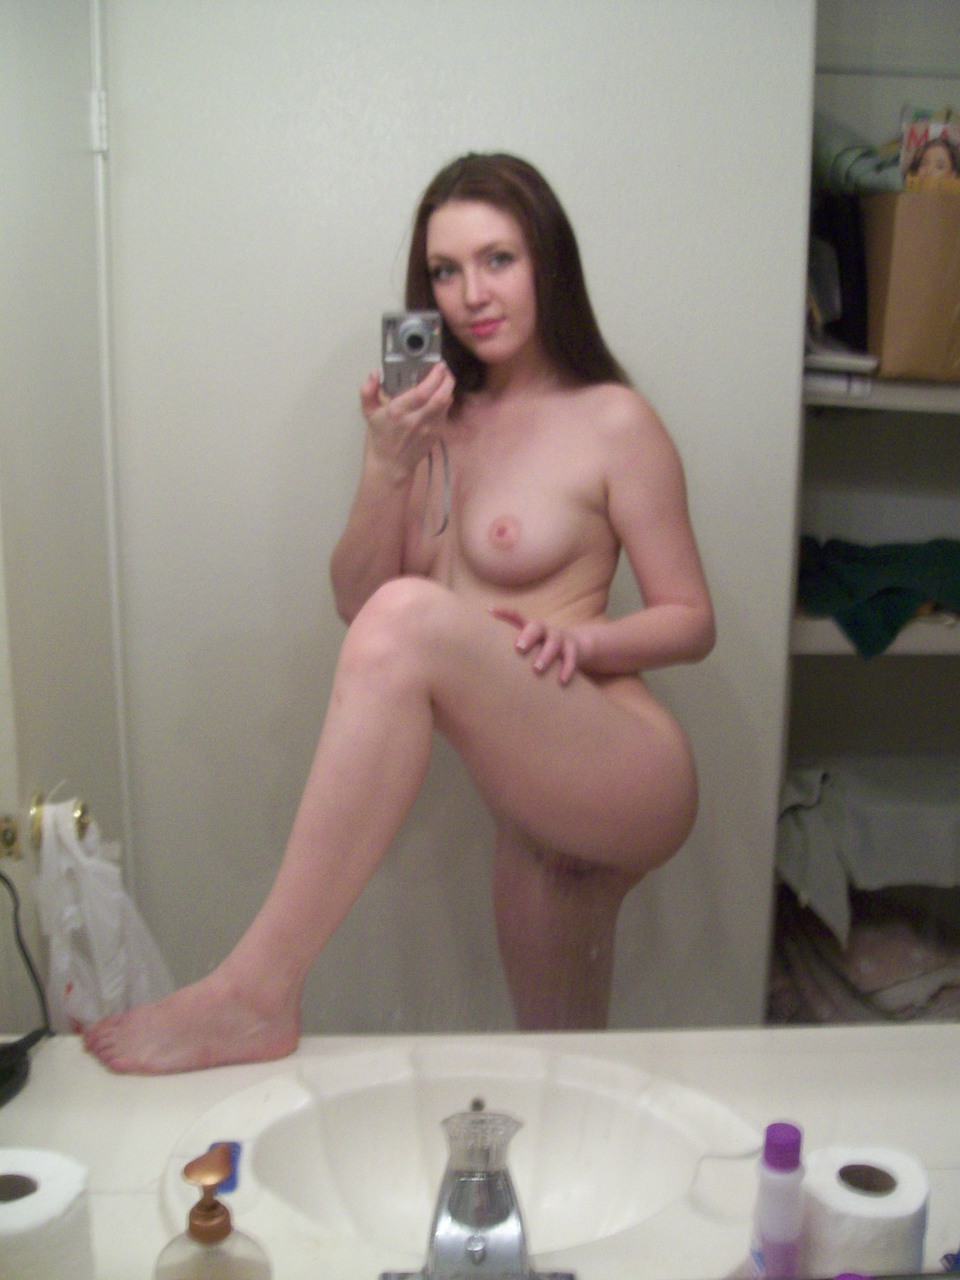 dominique swain nude pic